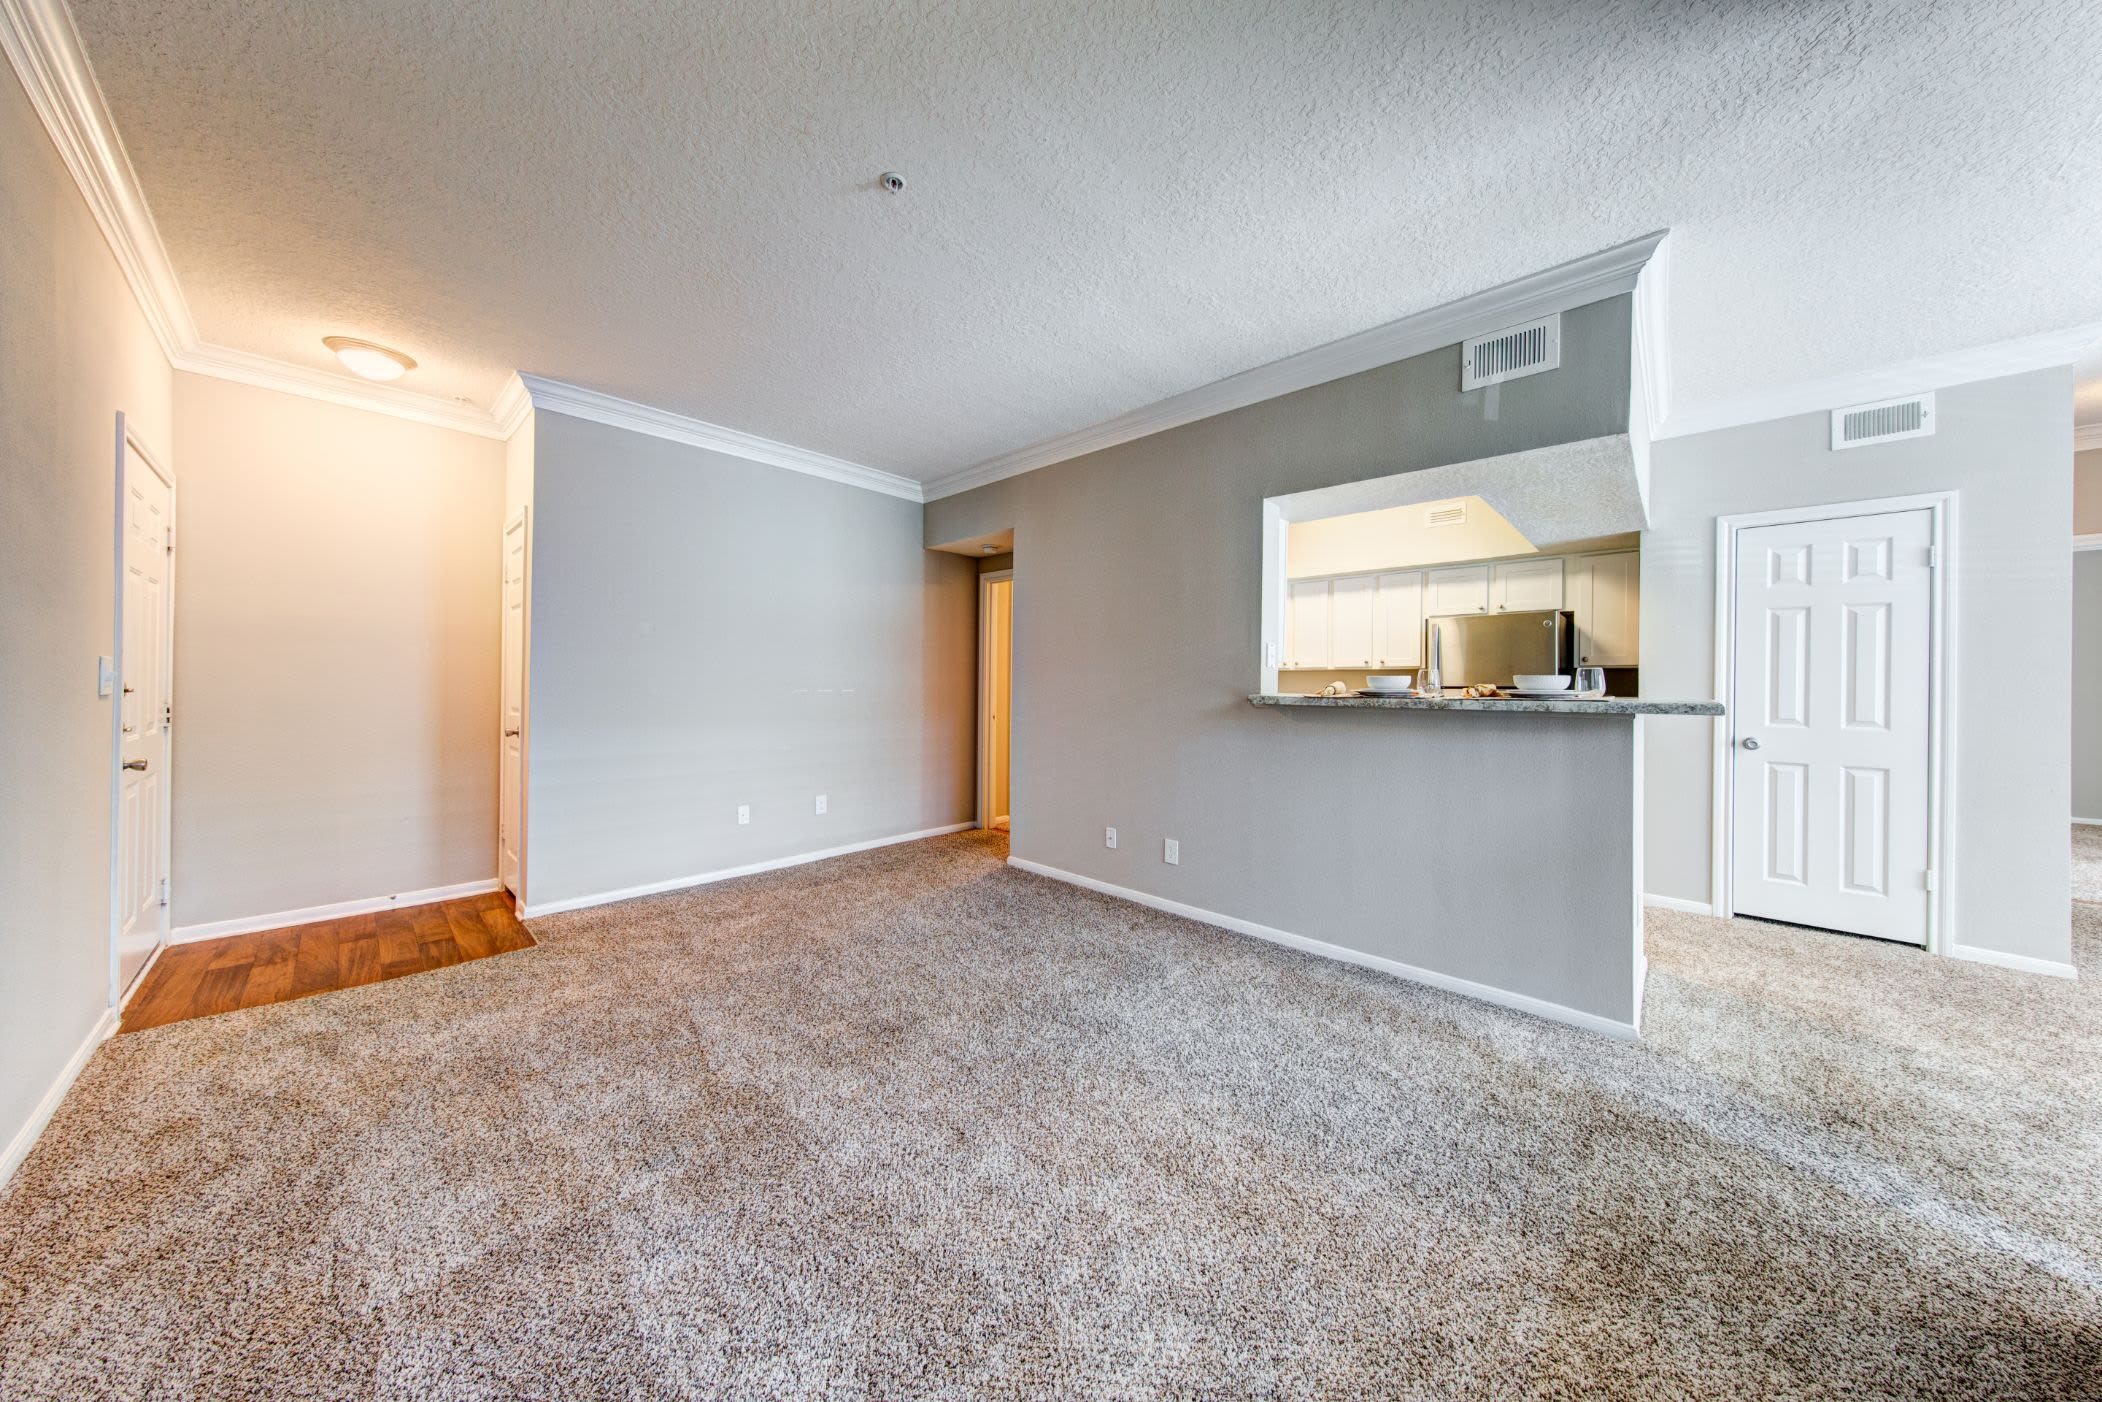 Living area with carpet floors at Marquis at Silverton in Cary, North Carolina